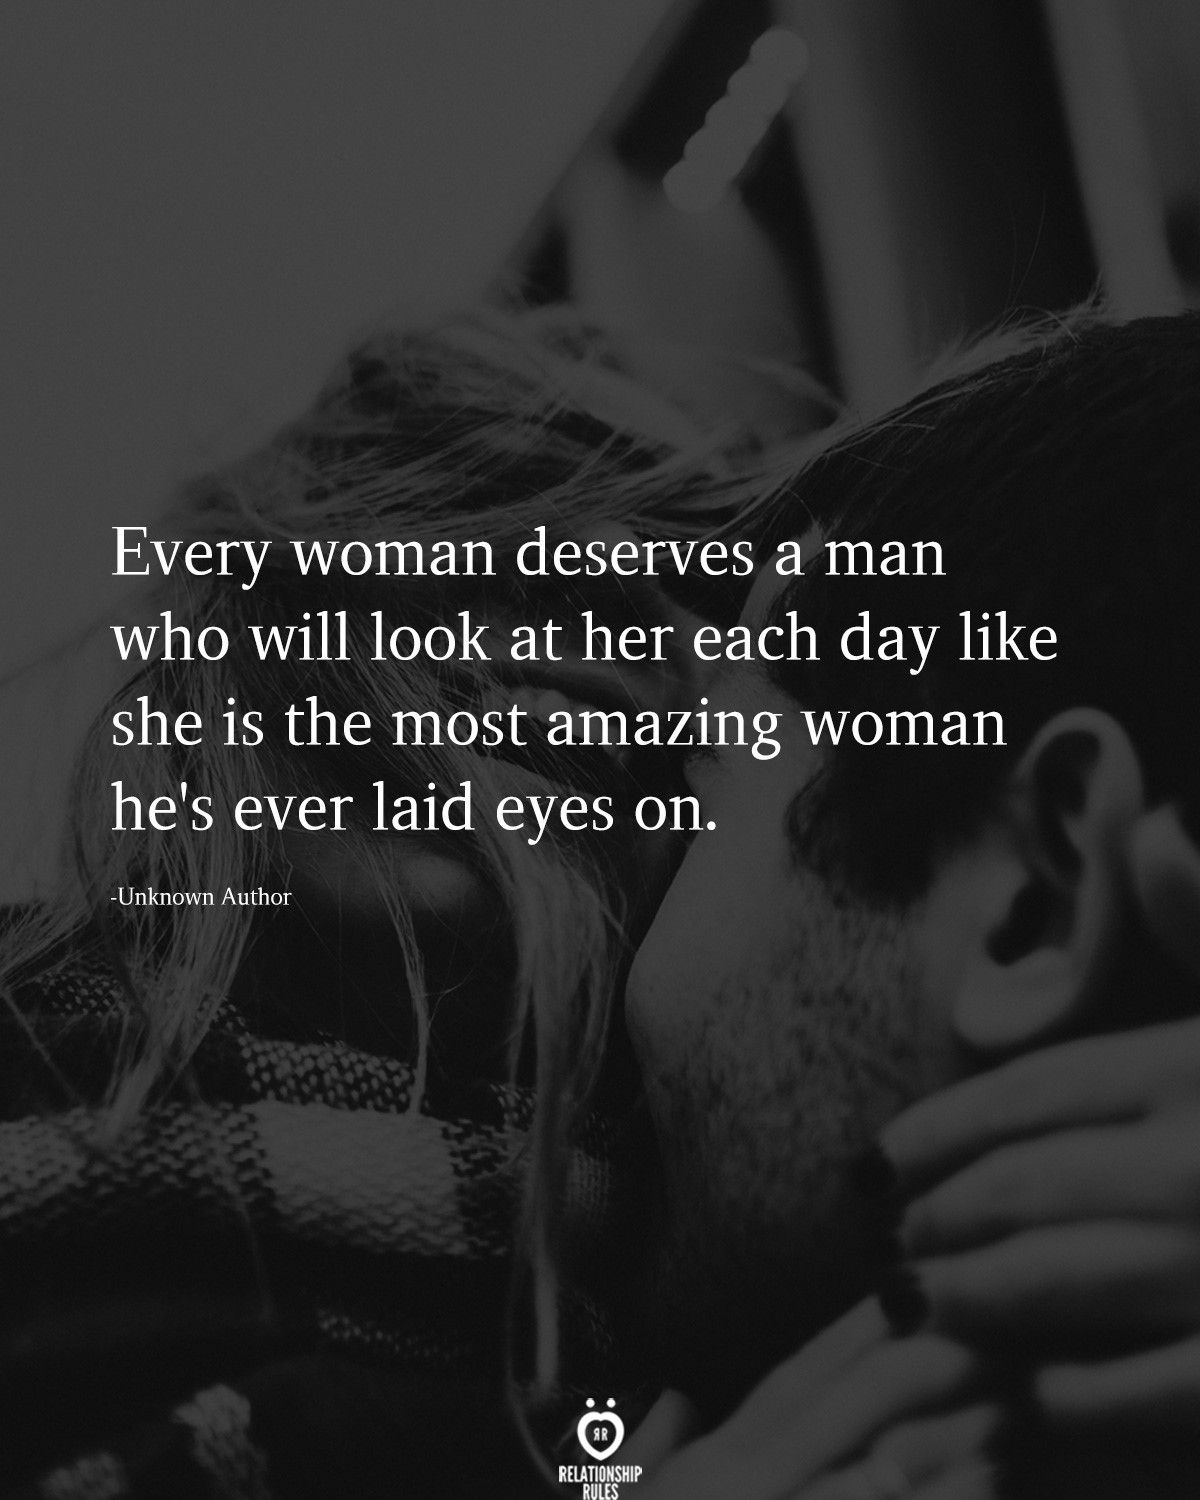 Every woman deserves a man in 2020 | Deep relationship